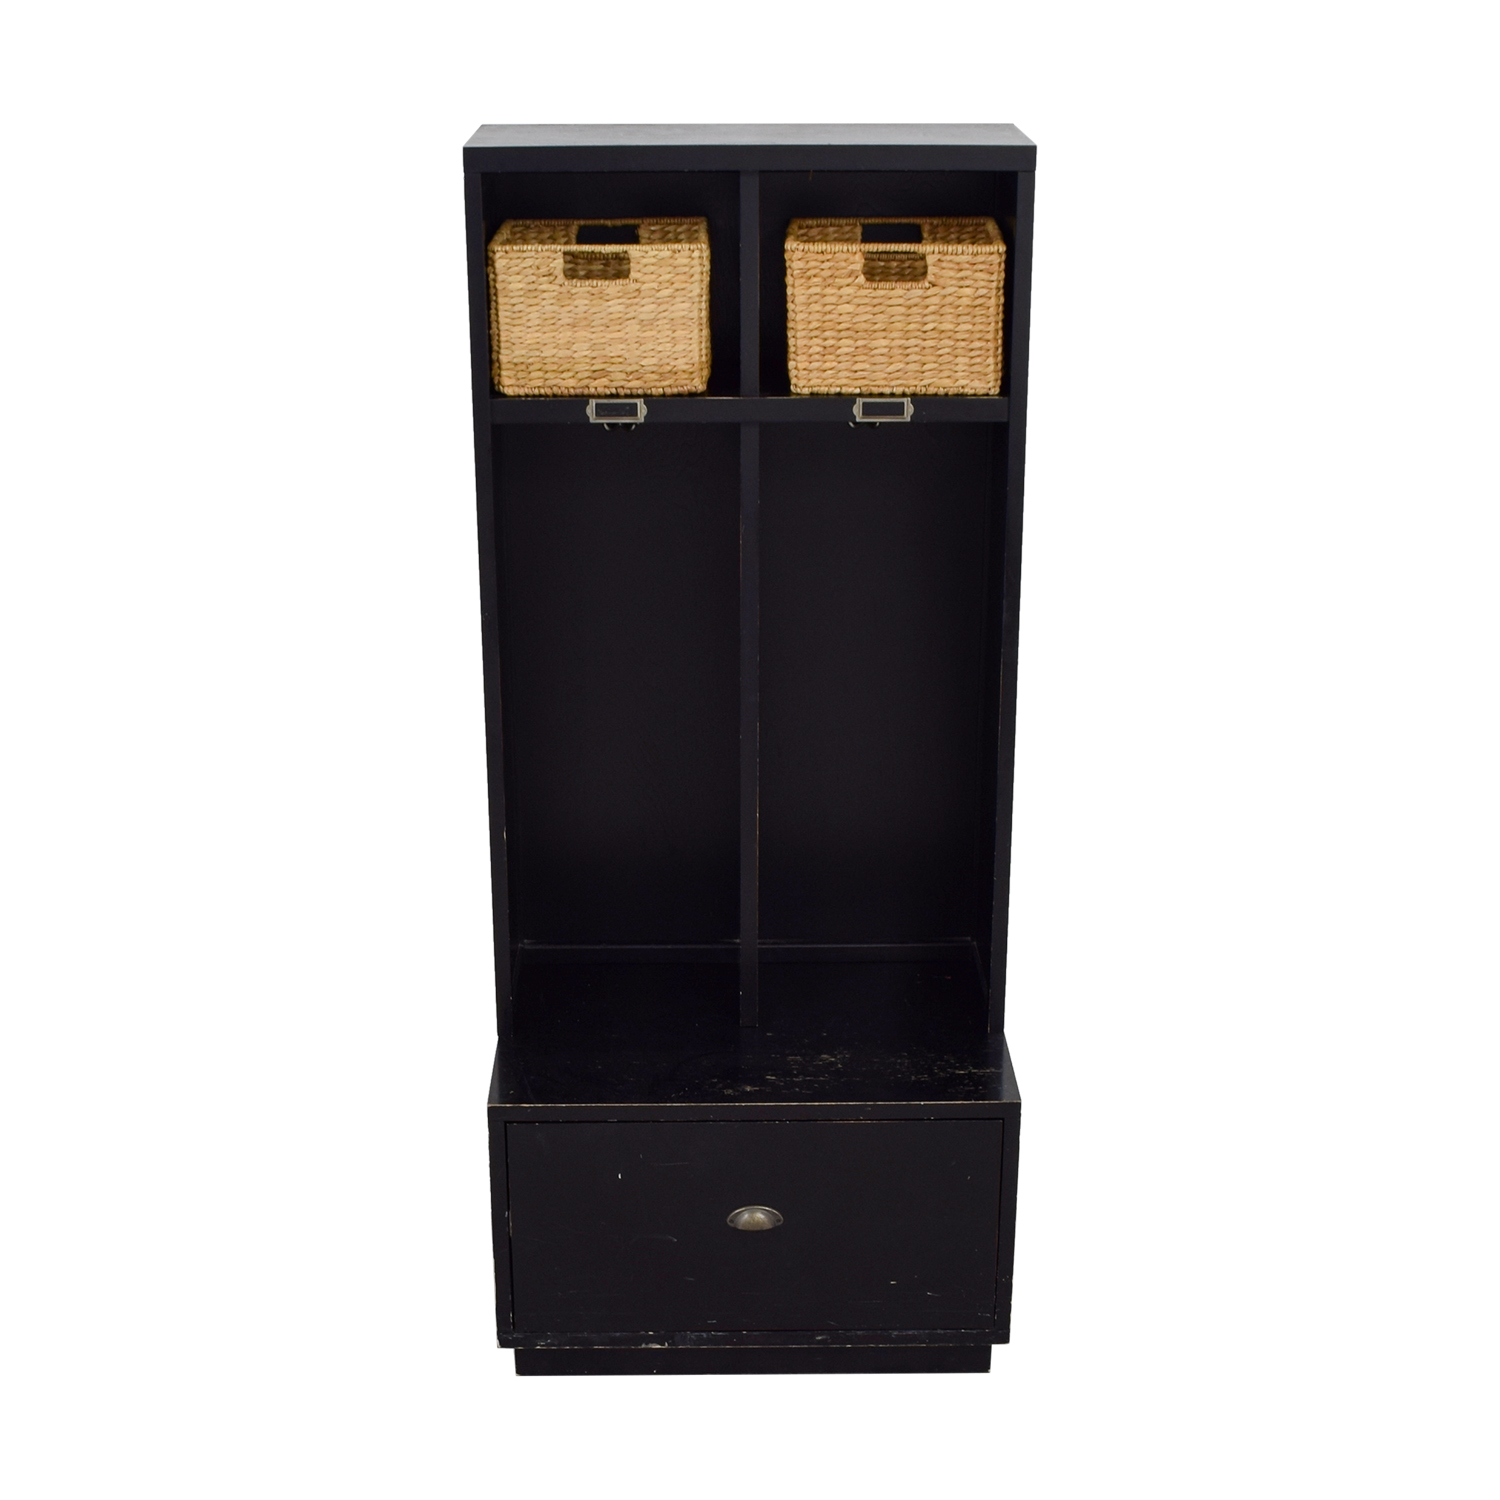 buy Pottery Barn Pottery Barn Single Drawer Mud Room Lockers with Wicker Baskets online